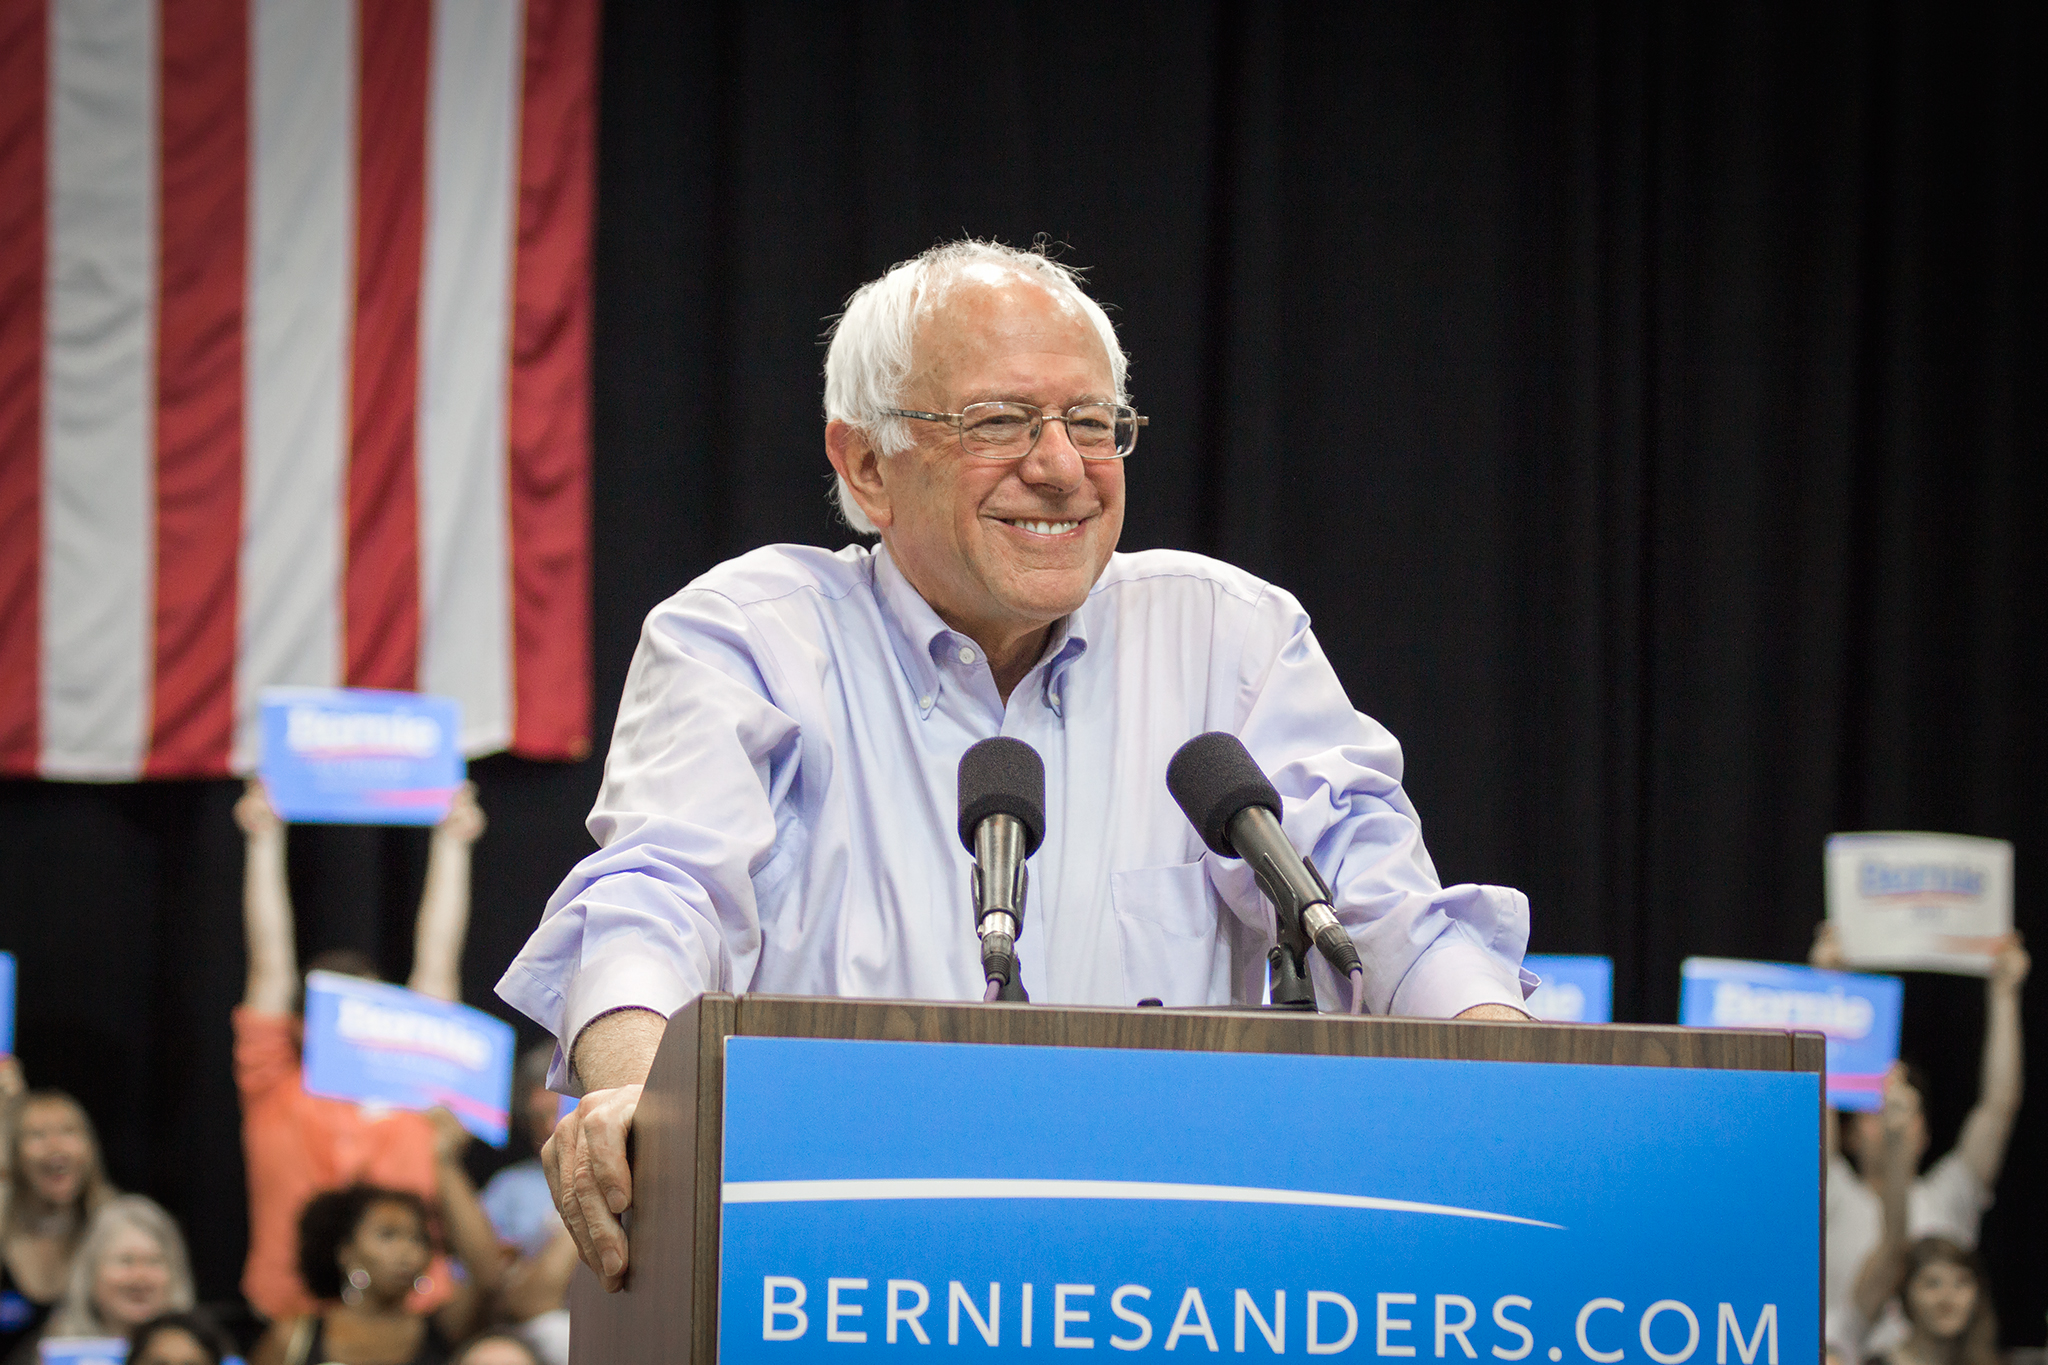 Bernie Sanders campaigning for President in 2016 Nick Solari Creative Commons